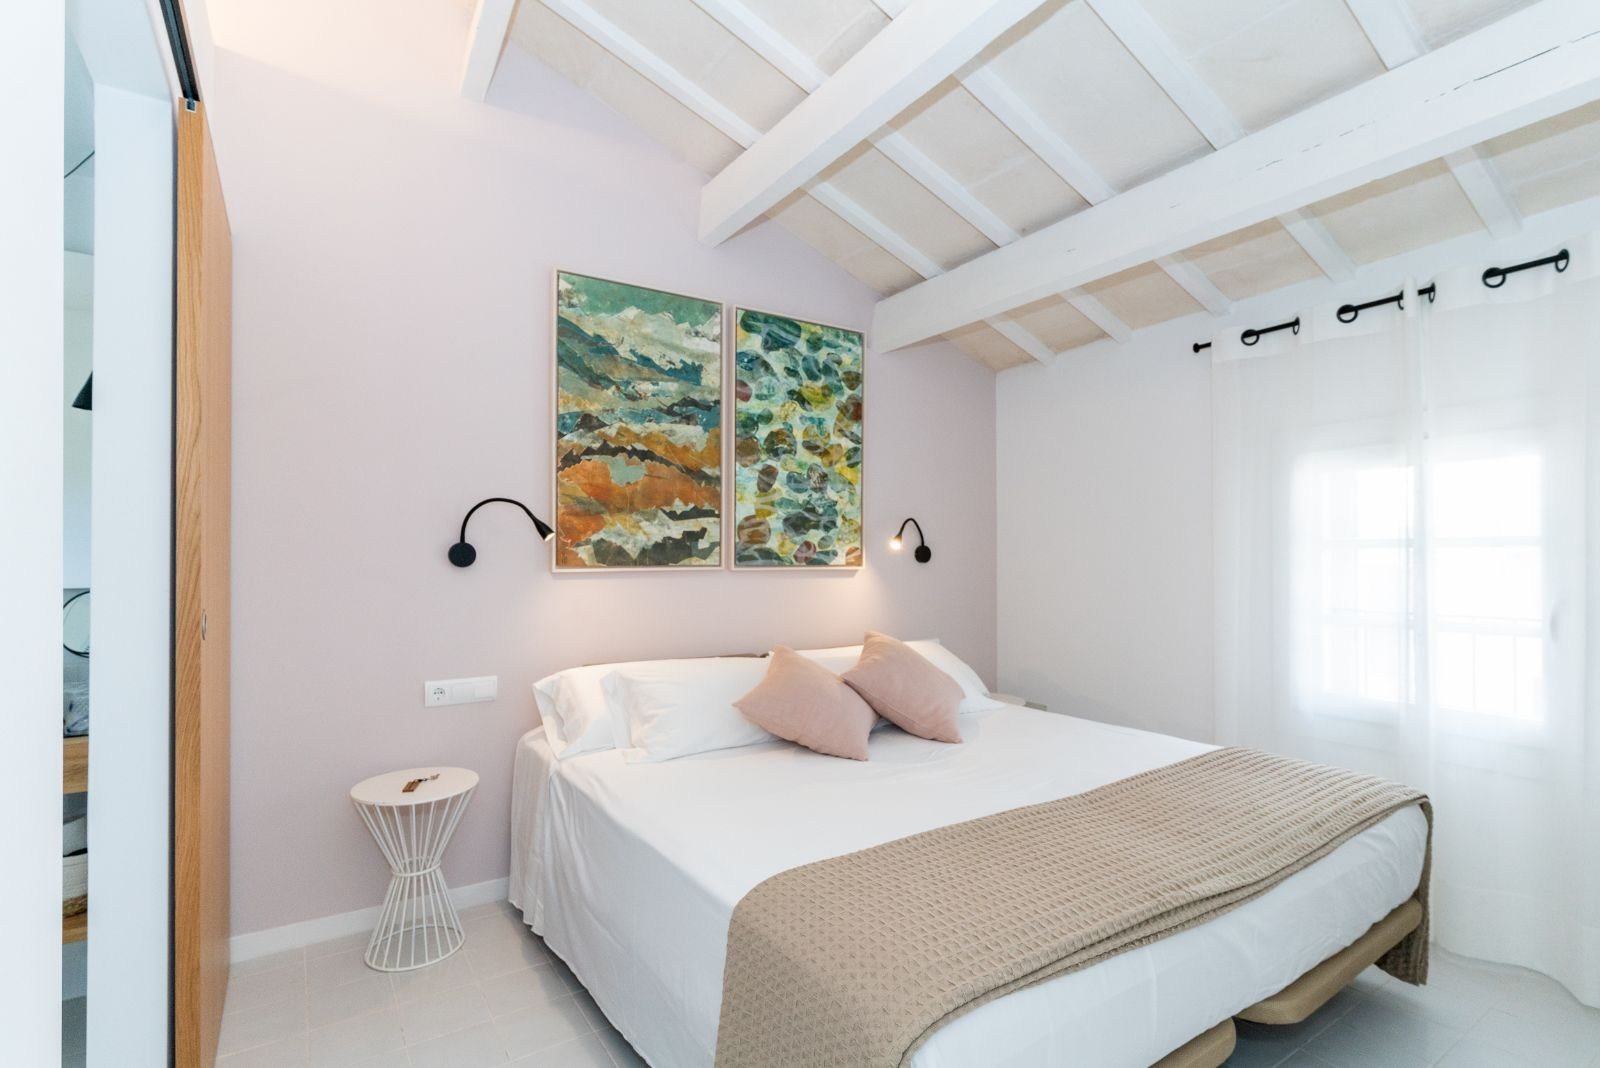 Double rooms m - 27